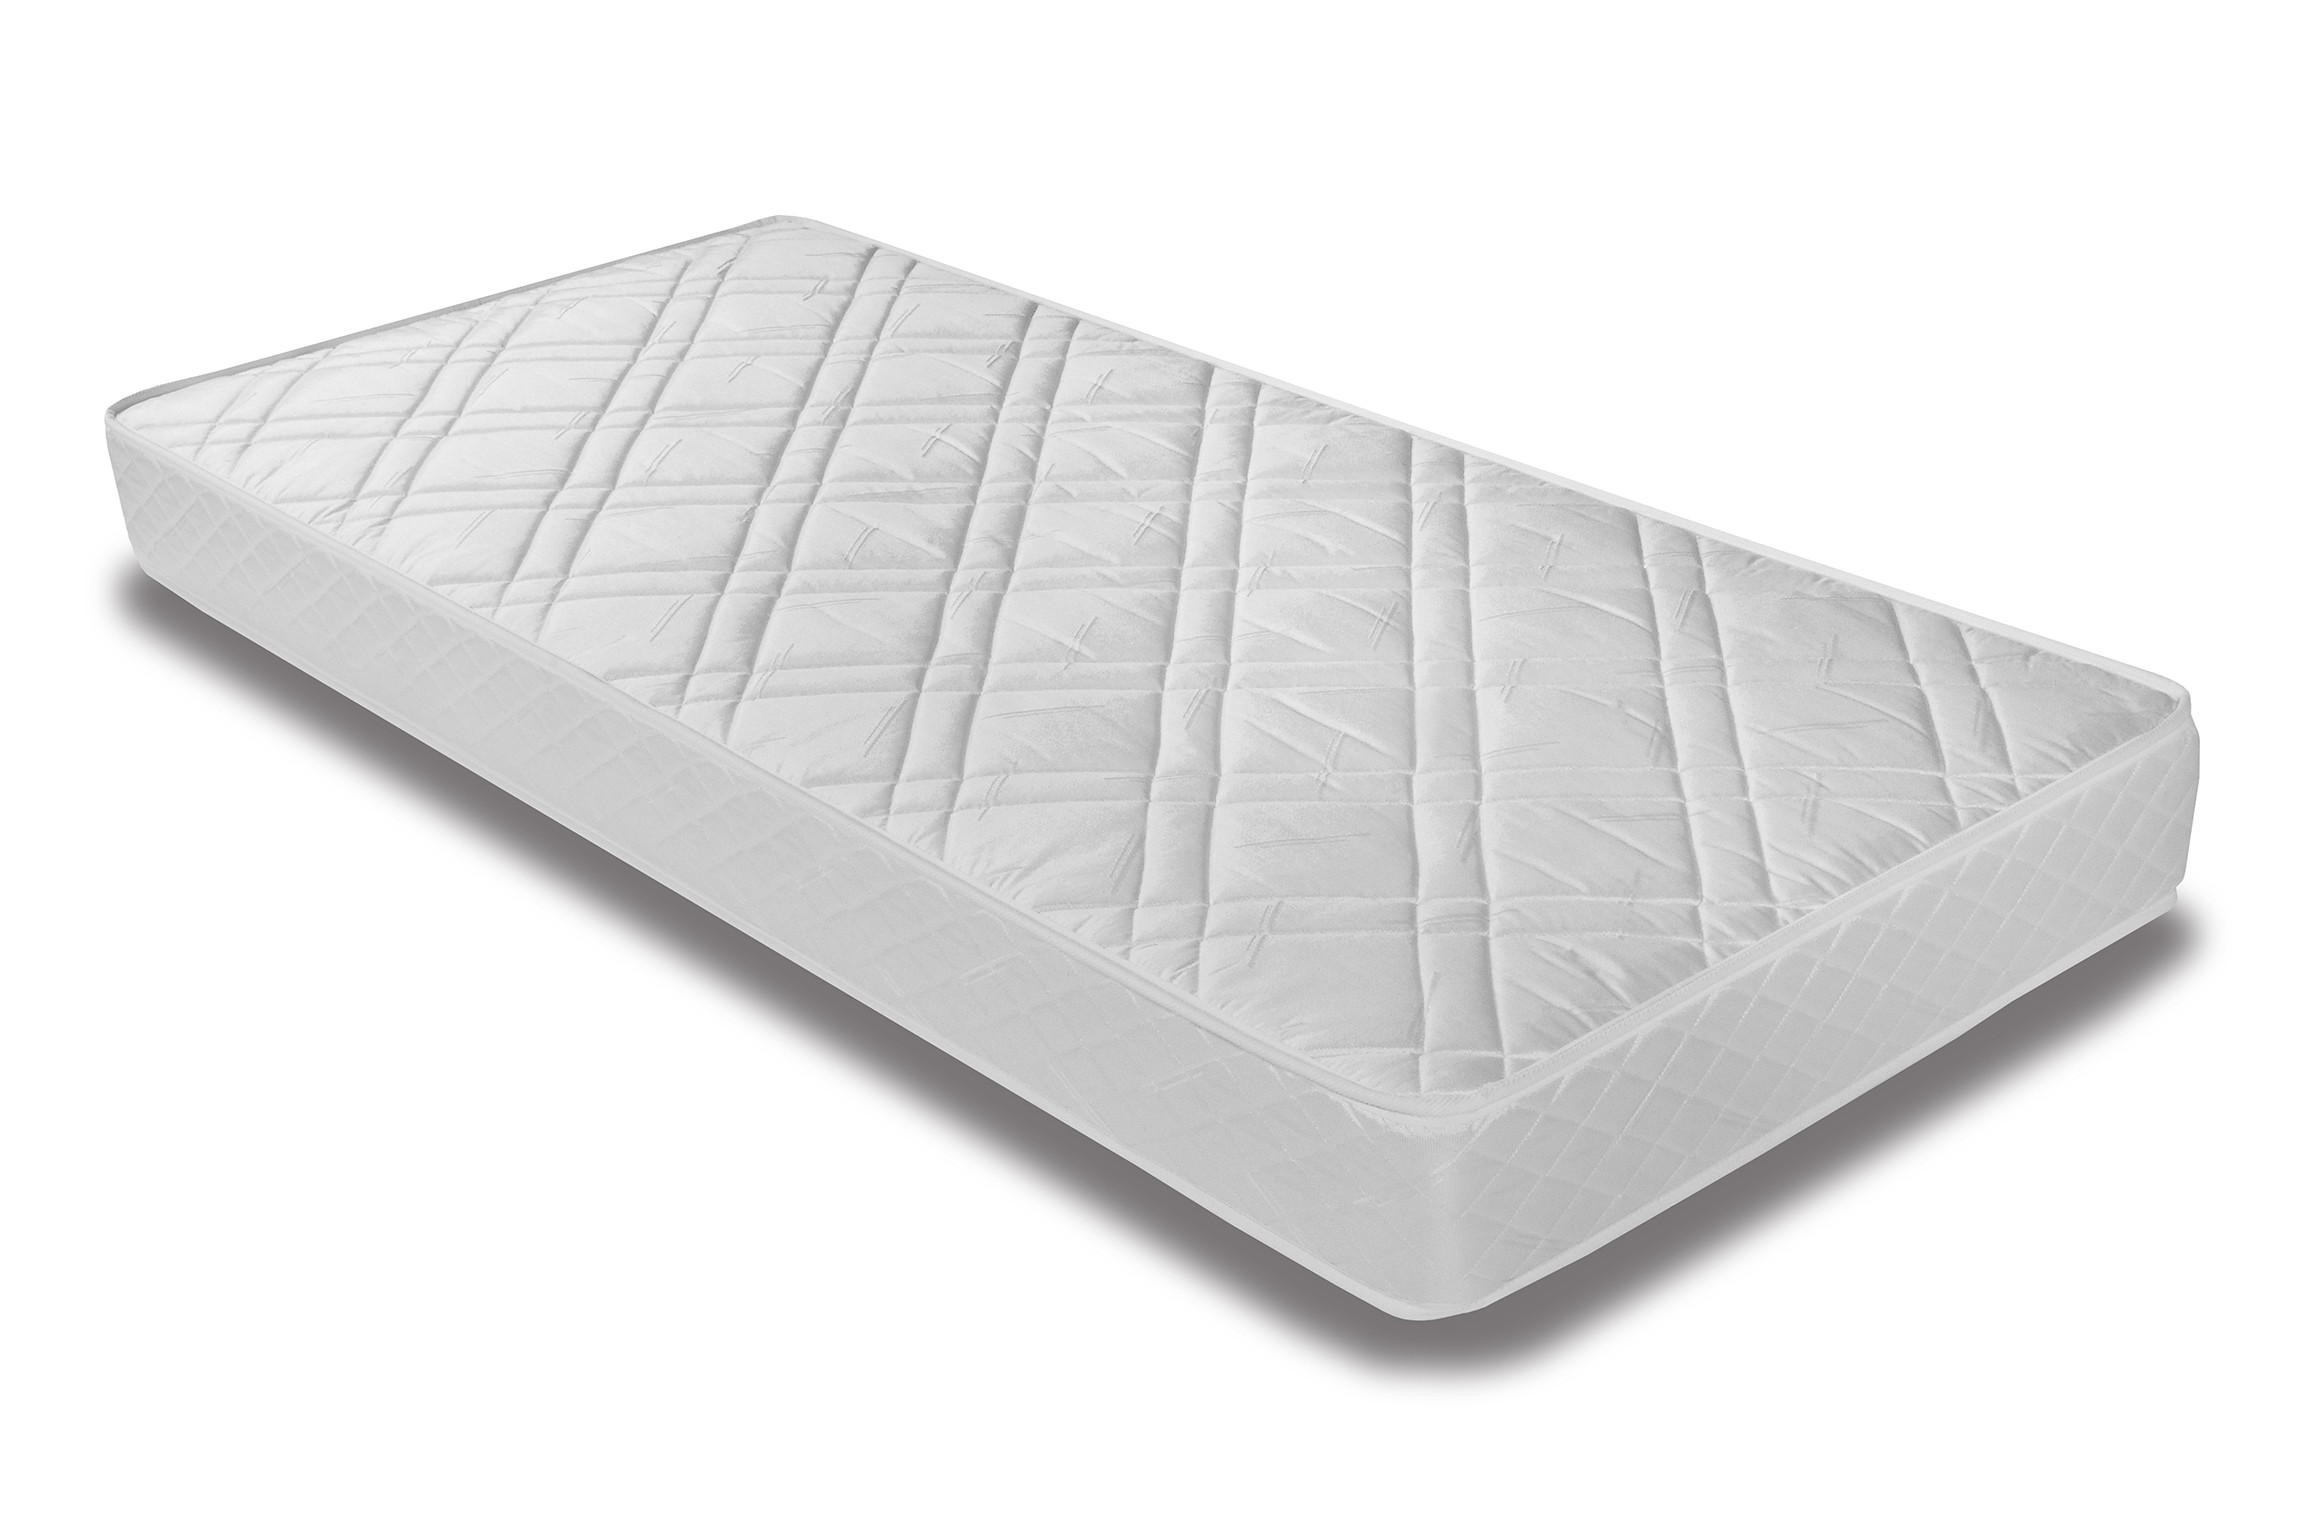 Bonellvering matras goede kwaliteit boxsprings bestboxspring